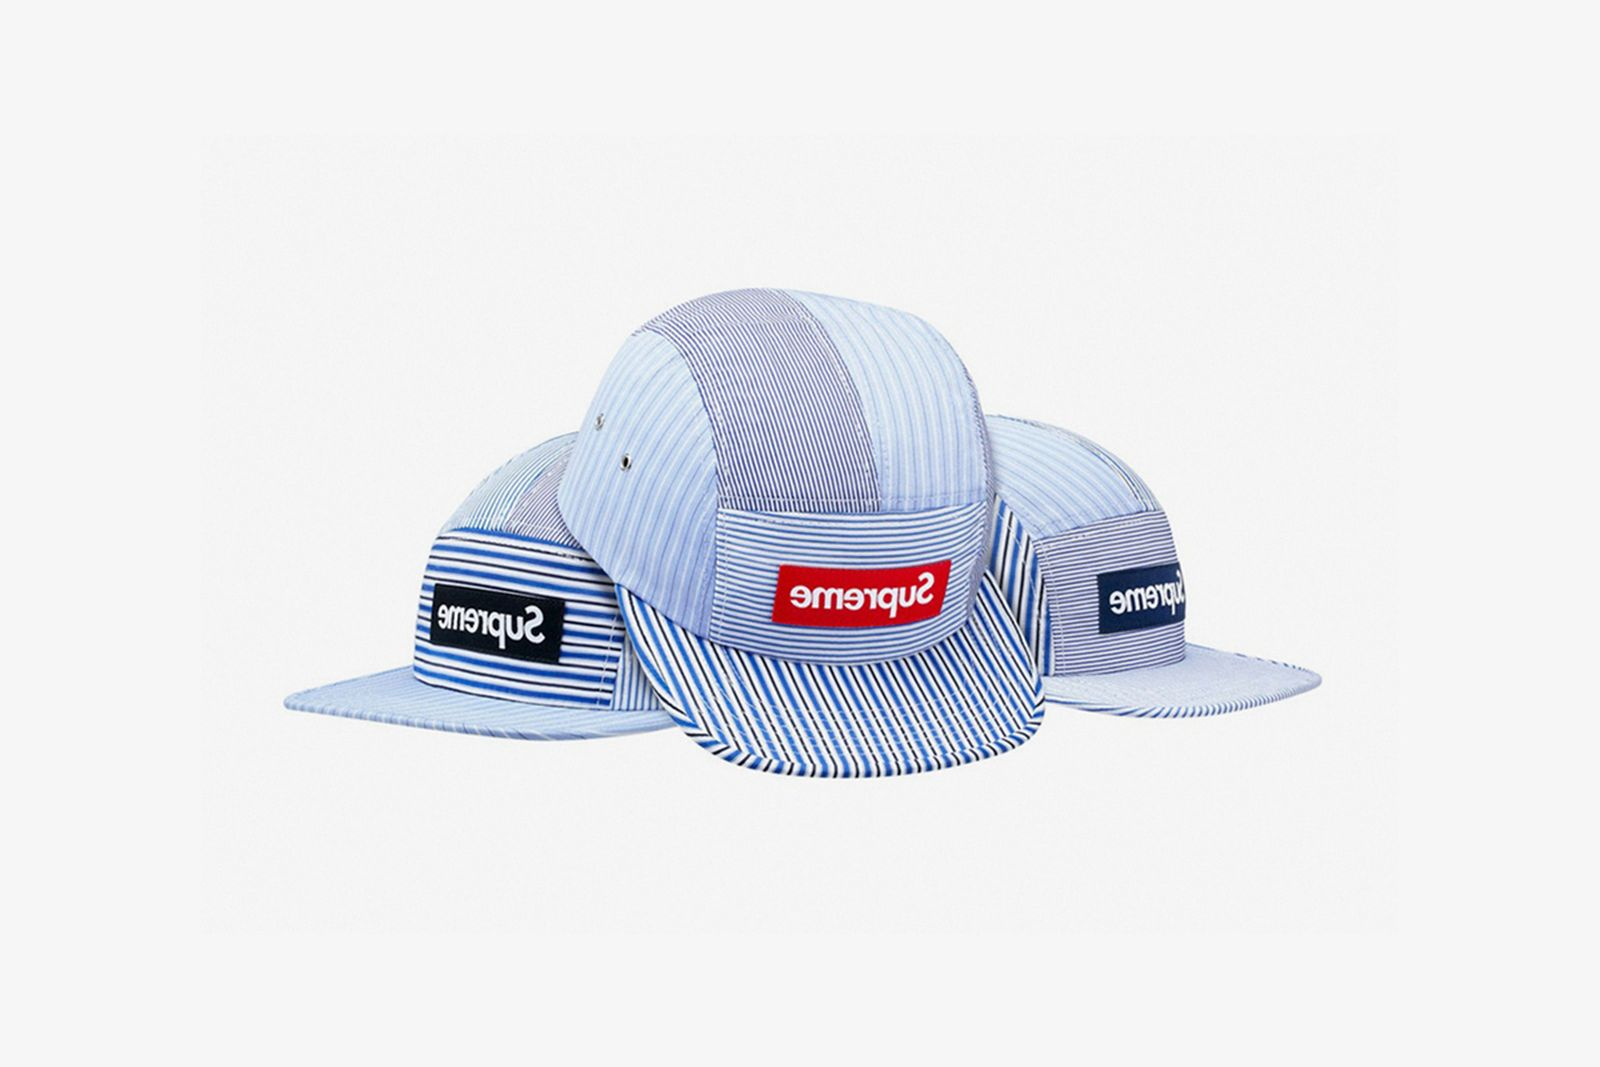 every-clothing-brand-supreme-ever-collaborated-26